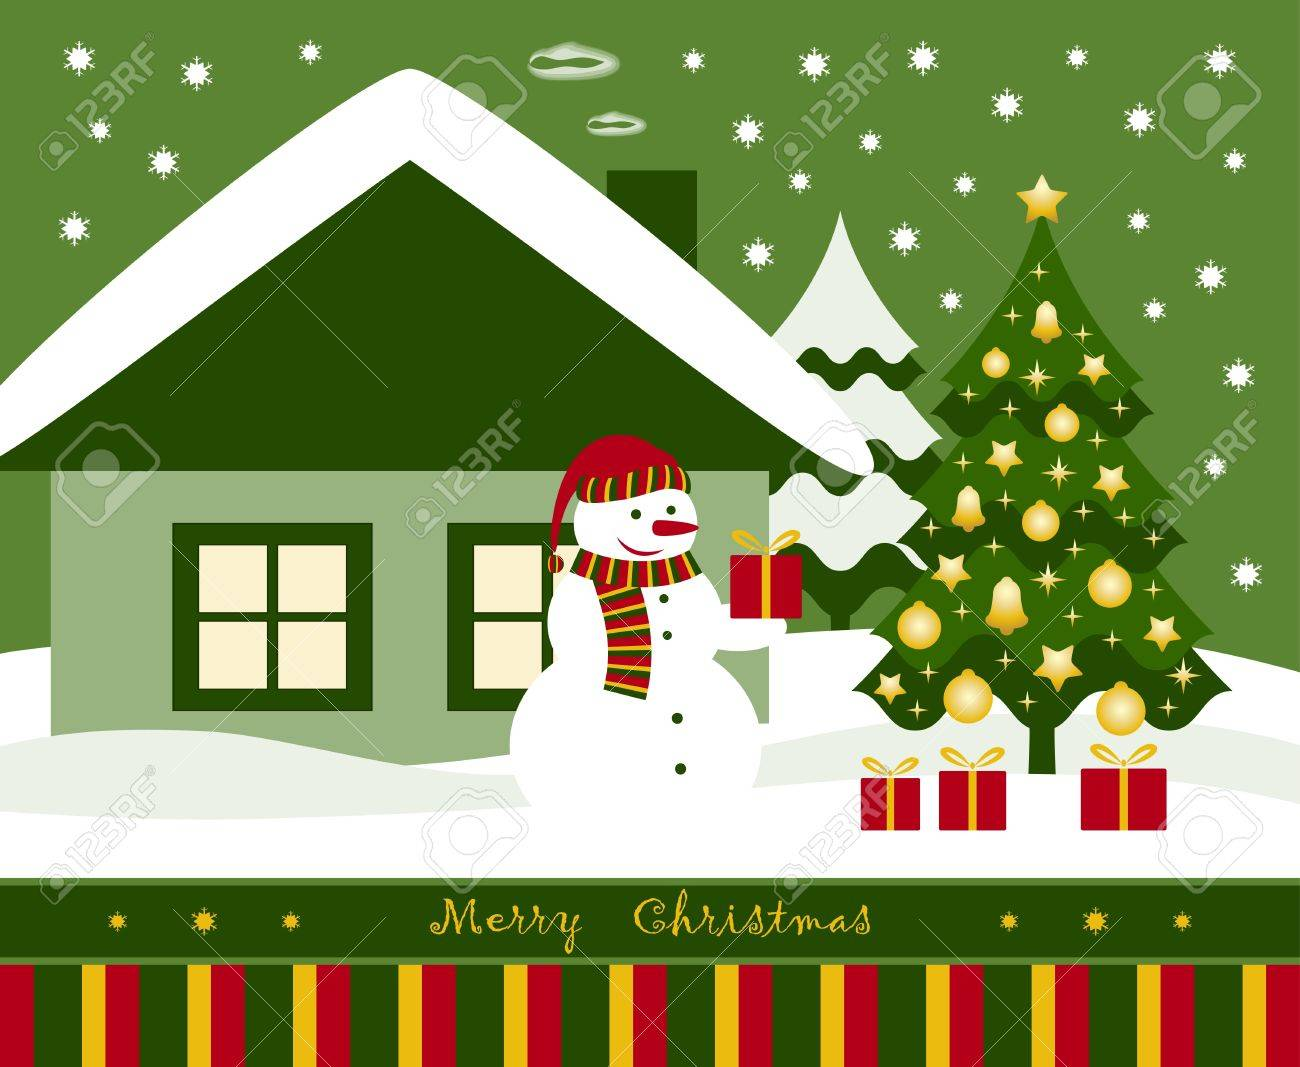 vector snowman, Christmas tree and gifts in front of house Stock Vector - 11210537